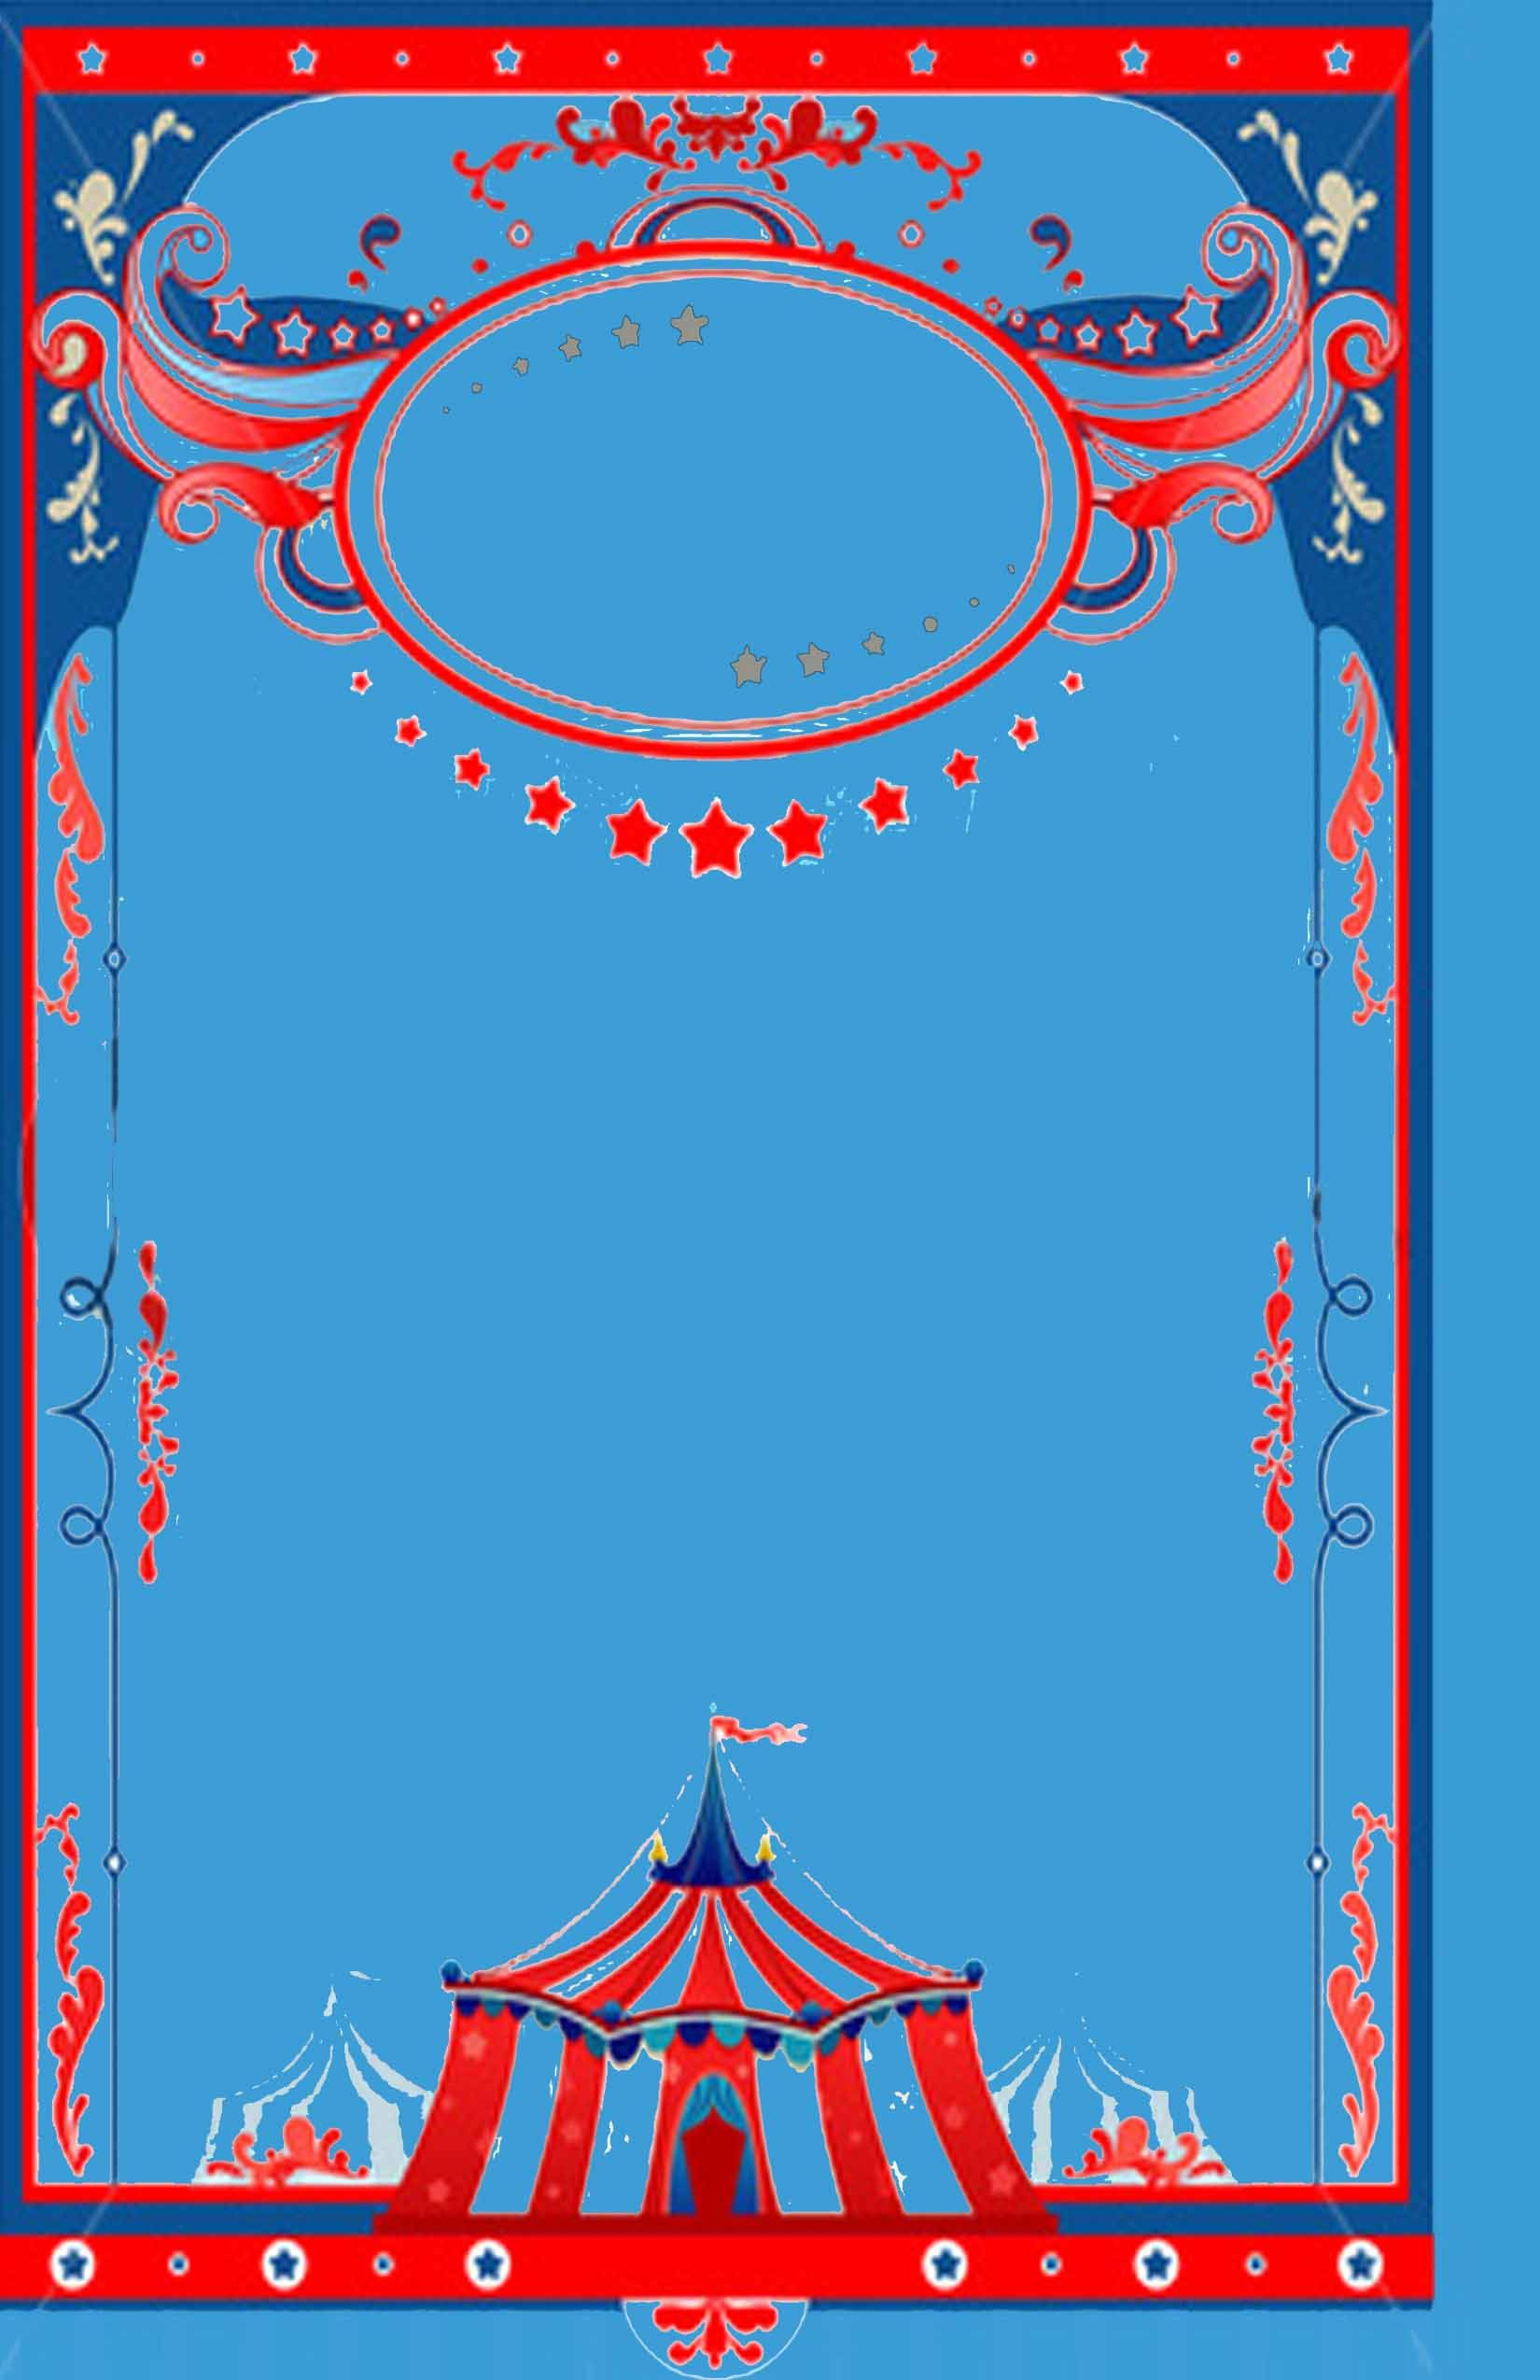 Circus theme background template Baby shower